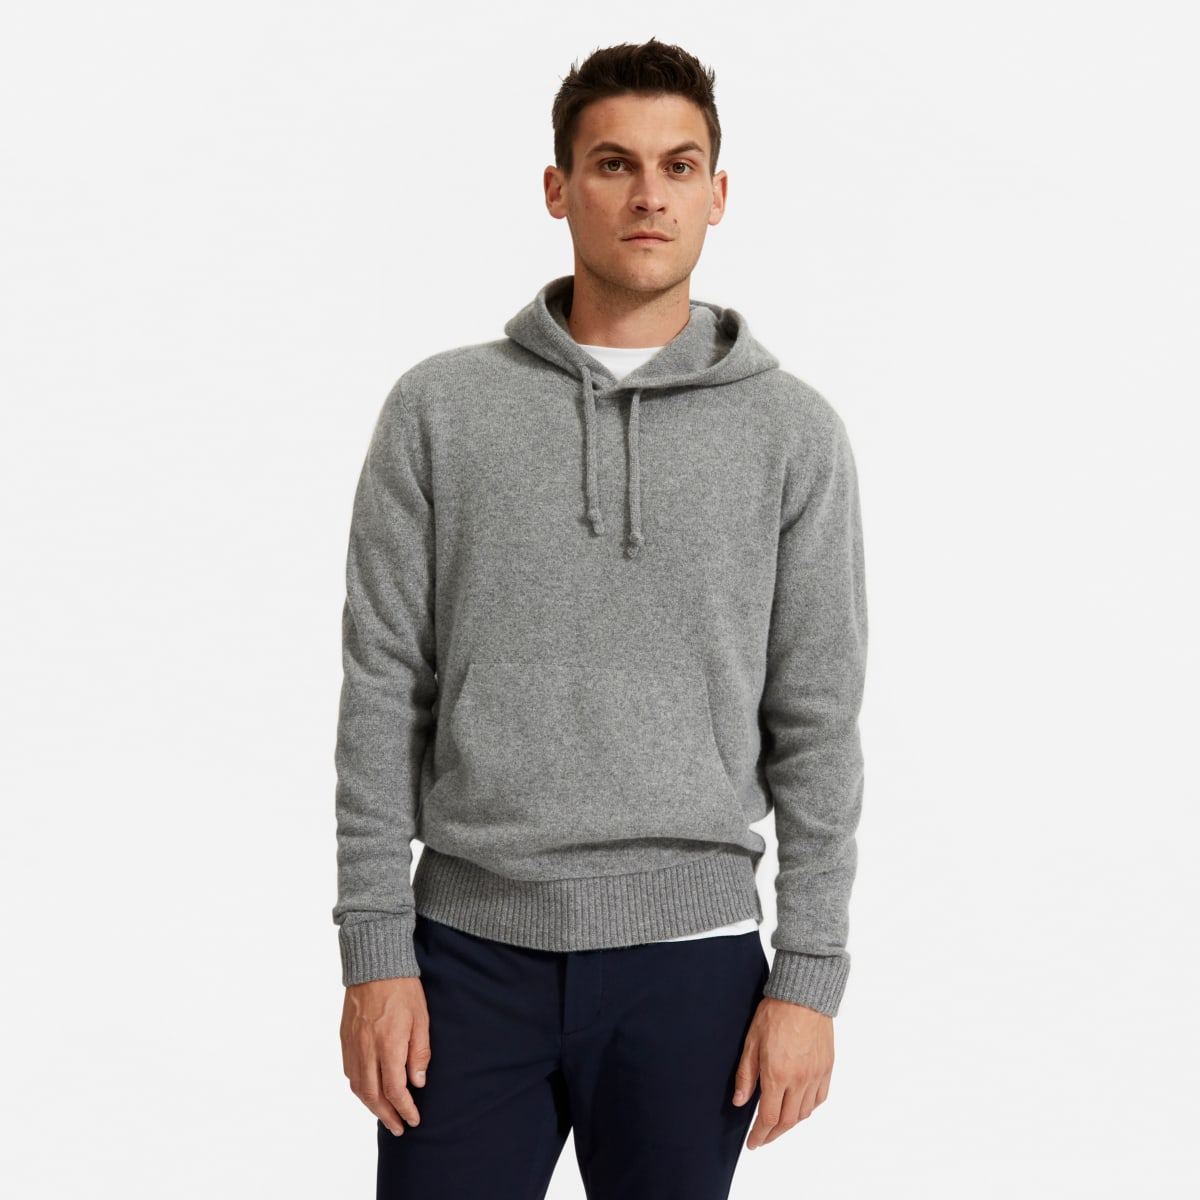 The Felted Merino Hoodie by Everlane